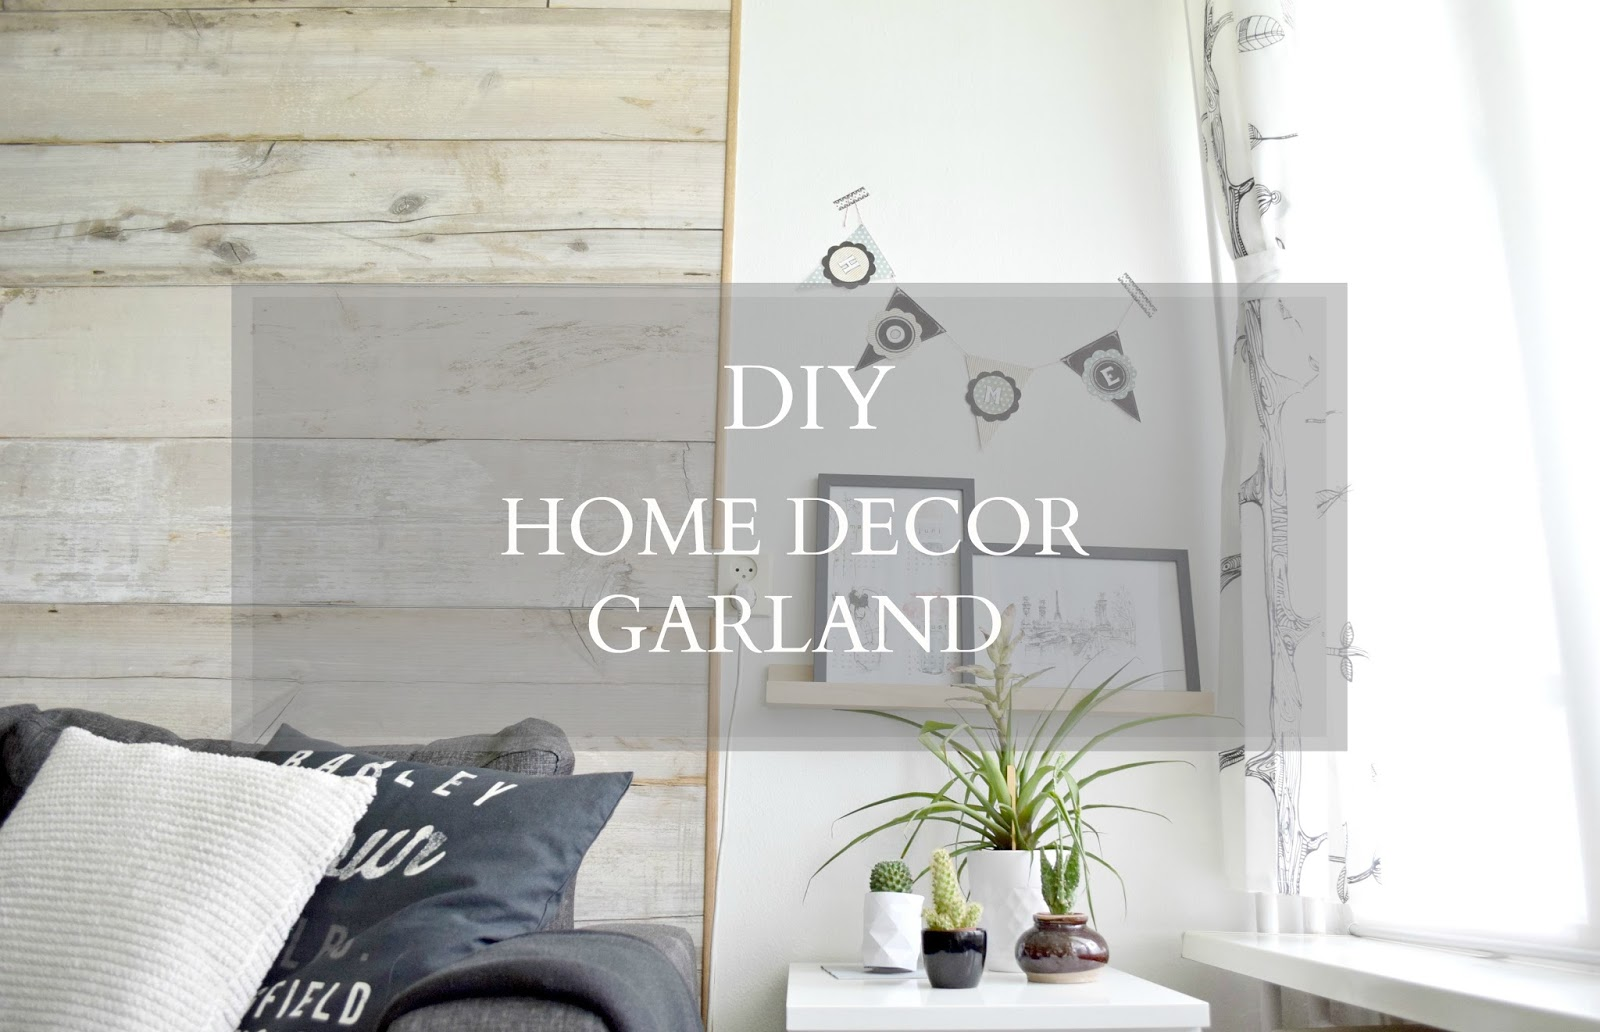 diy home decor garland